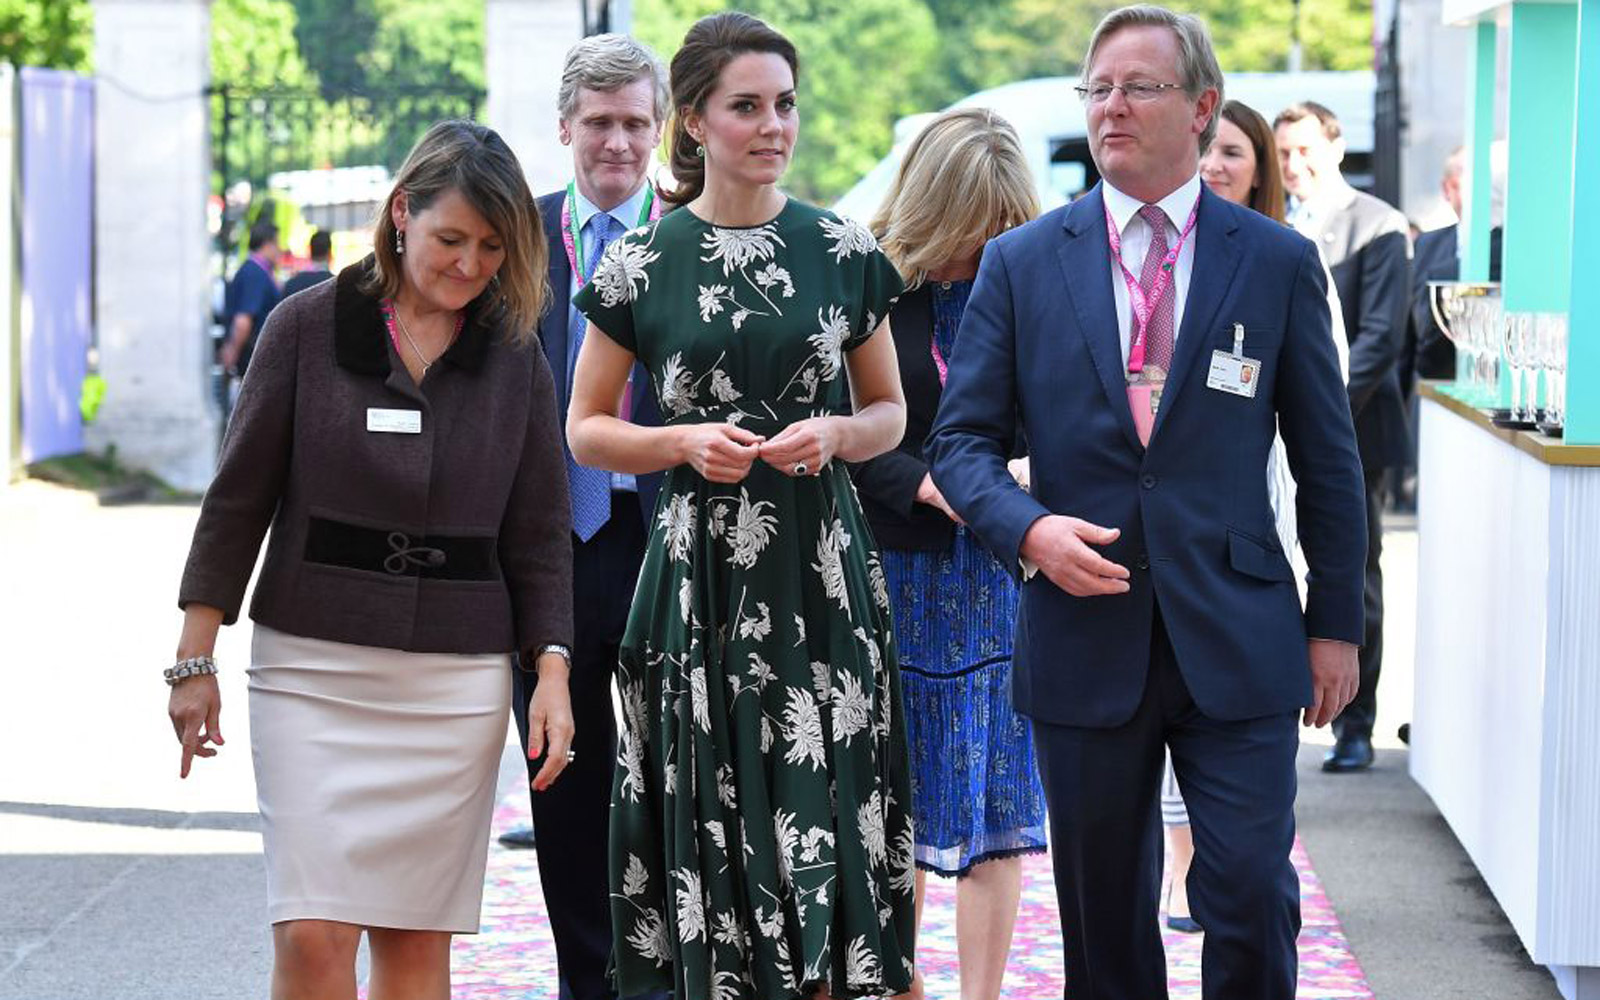 Britain's Catherine, Duchess of Cambridge (C), talks with Royal Horticultural Society (RHS) judge Mark Fane (R) as she arrives at the Chelsea Flower Show in London on May 22, 2017.The Chelsea flower show, held annually in the grounds of the Royal Hospita